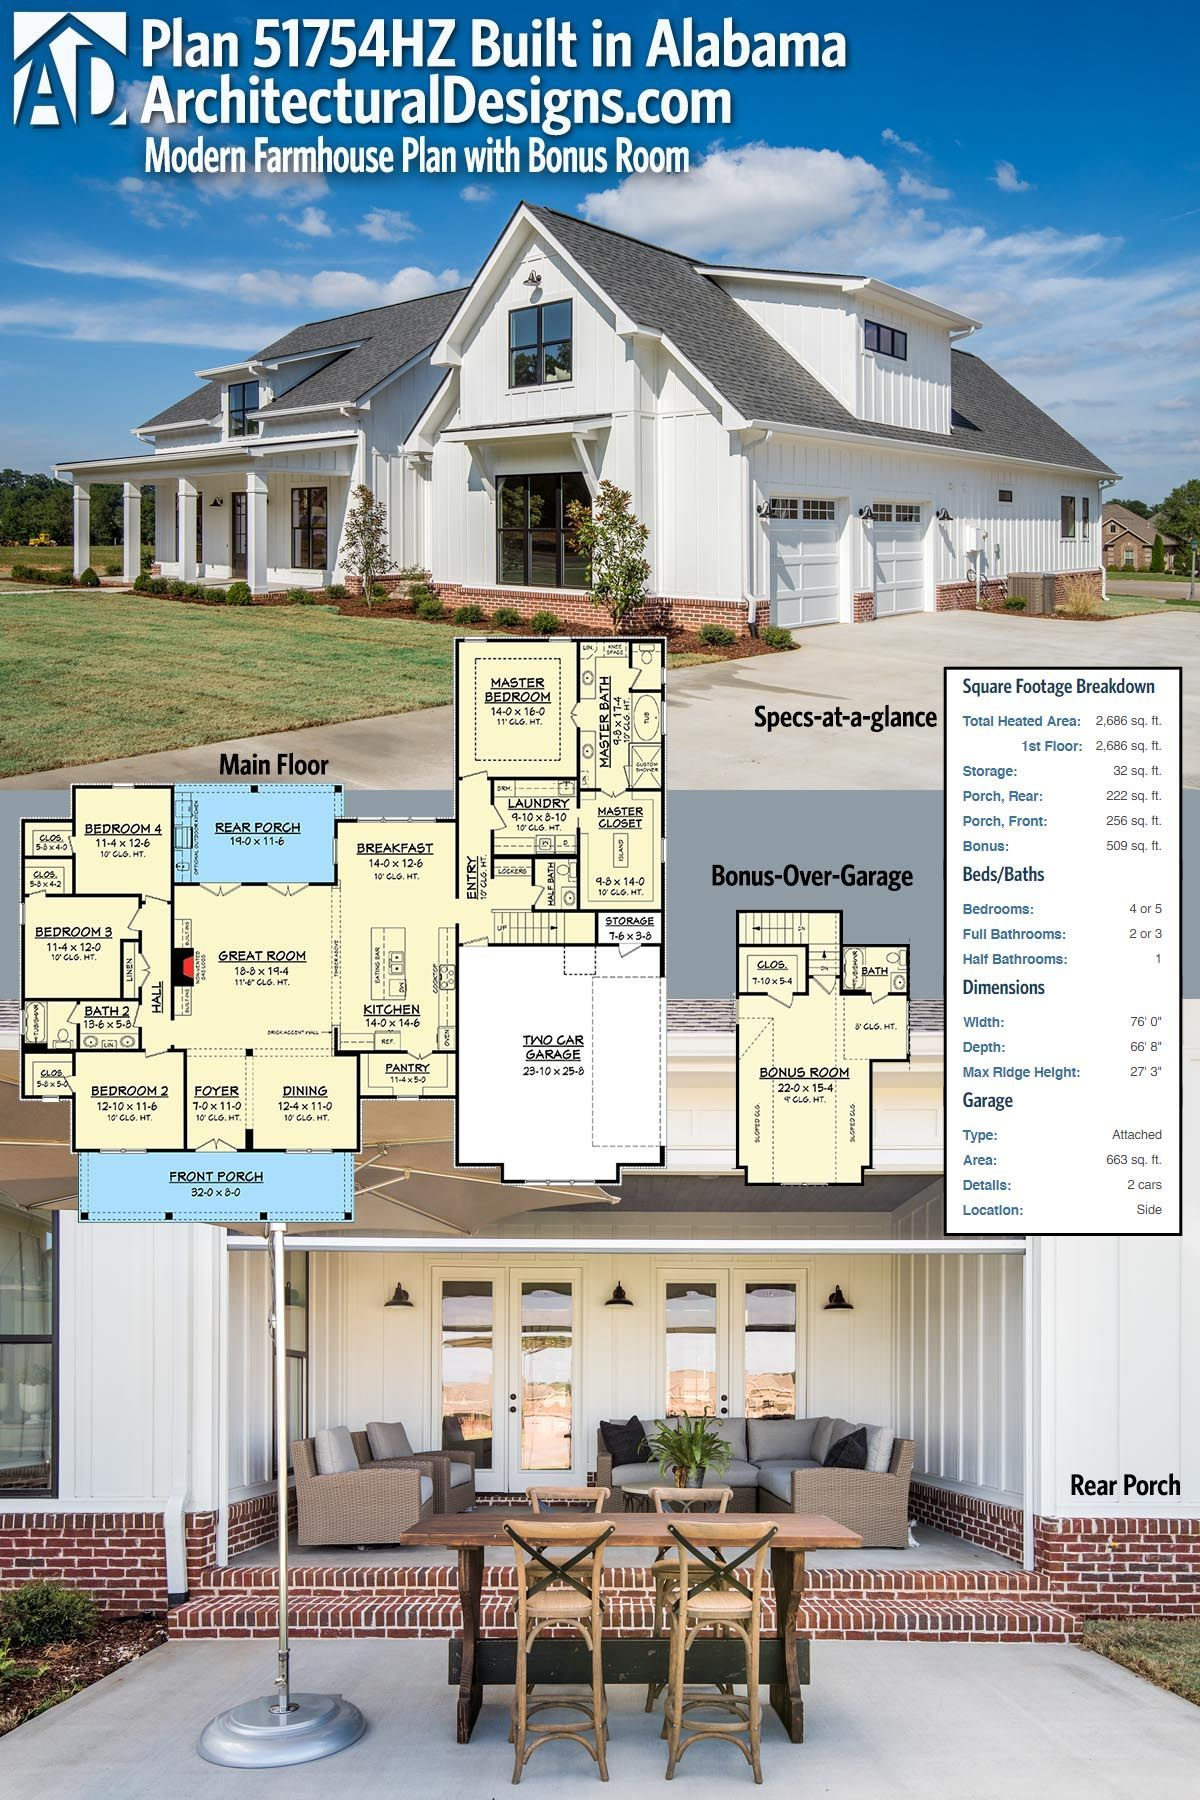 Architectural Designs Modern Farmhouse Plan 51754hz Was Built In Alabama By One Of Our Clients This Modern Farmhouse Plans Farmhouse Plans Country House Plans